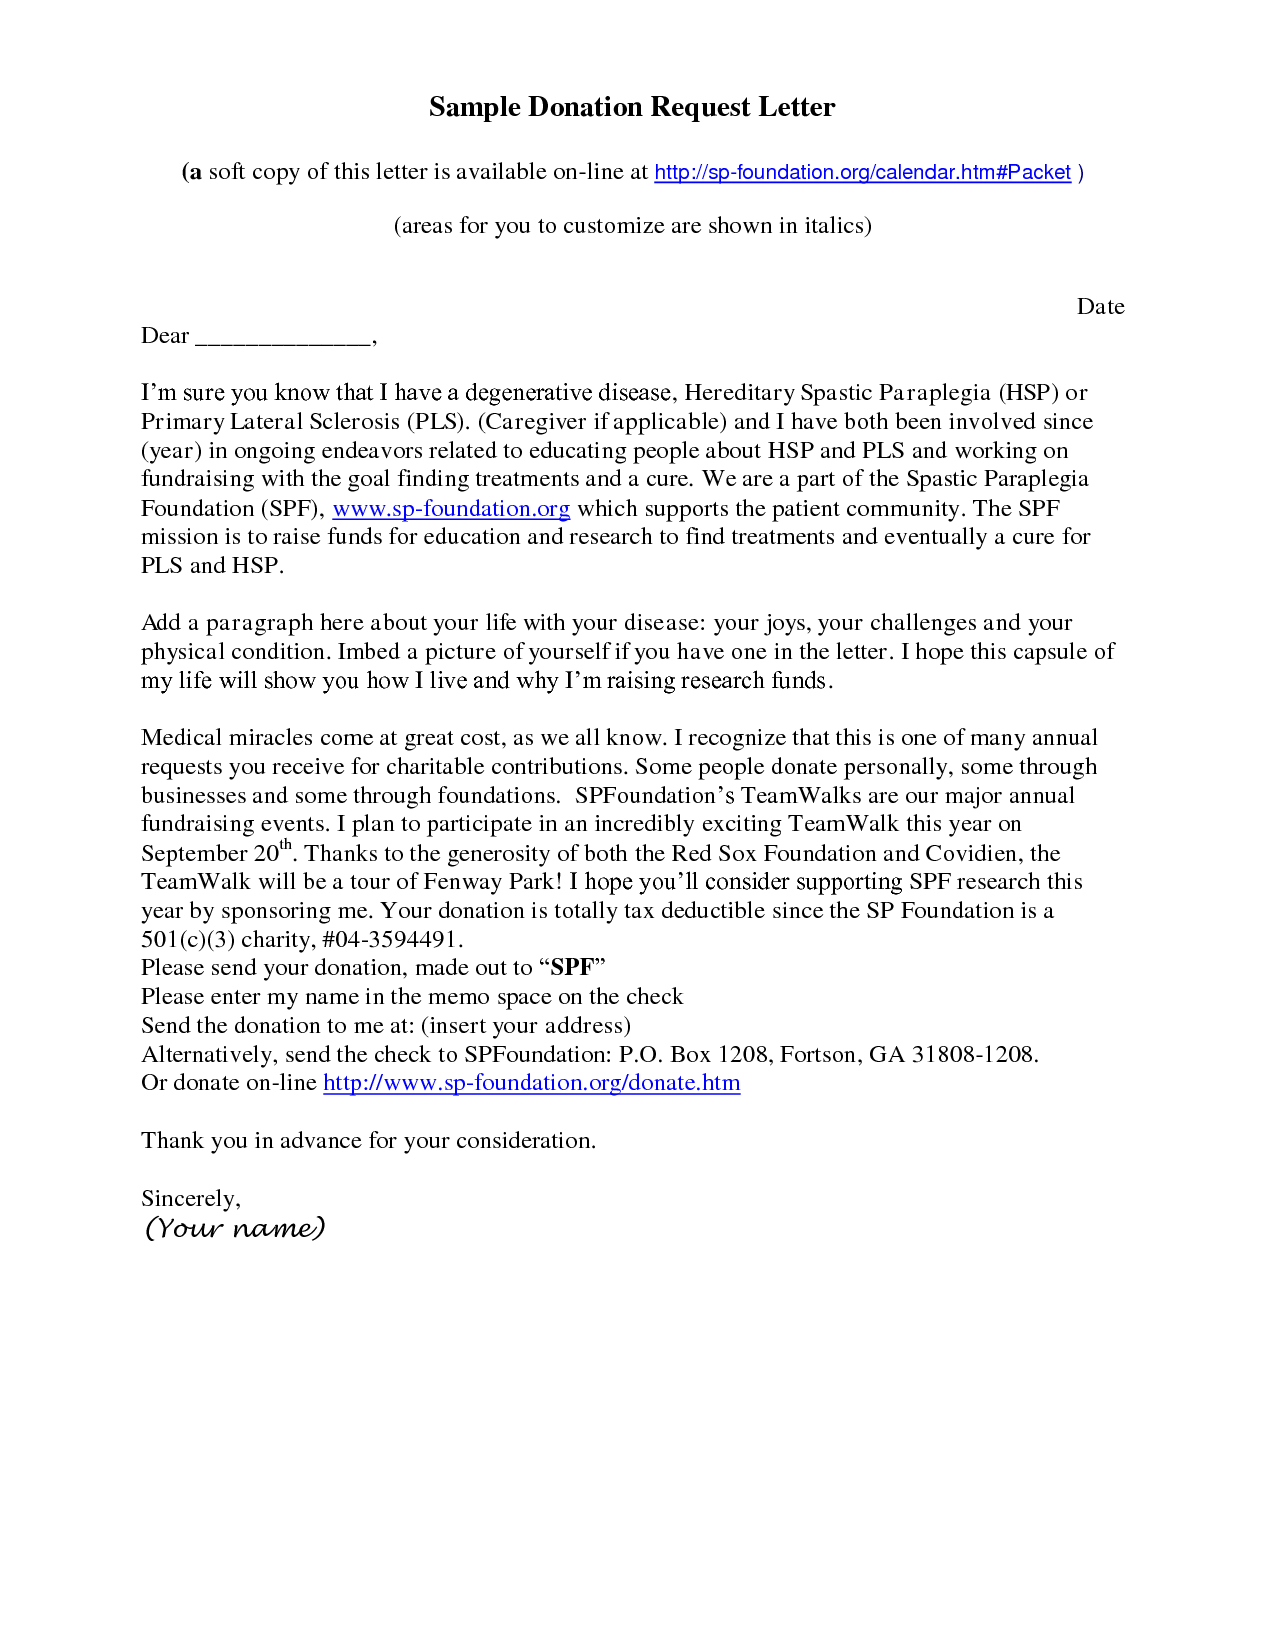 Charitable Contribution Letter Template - How to Write A solicitation Letter for Donations Choice Image